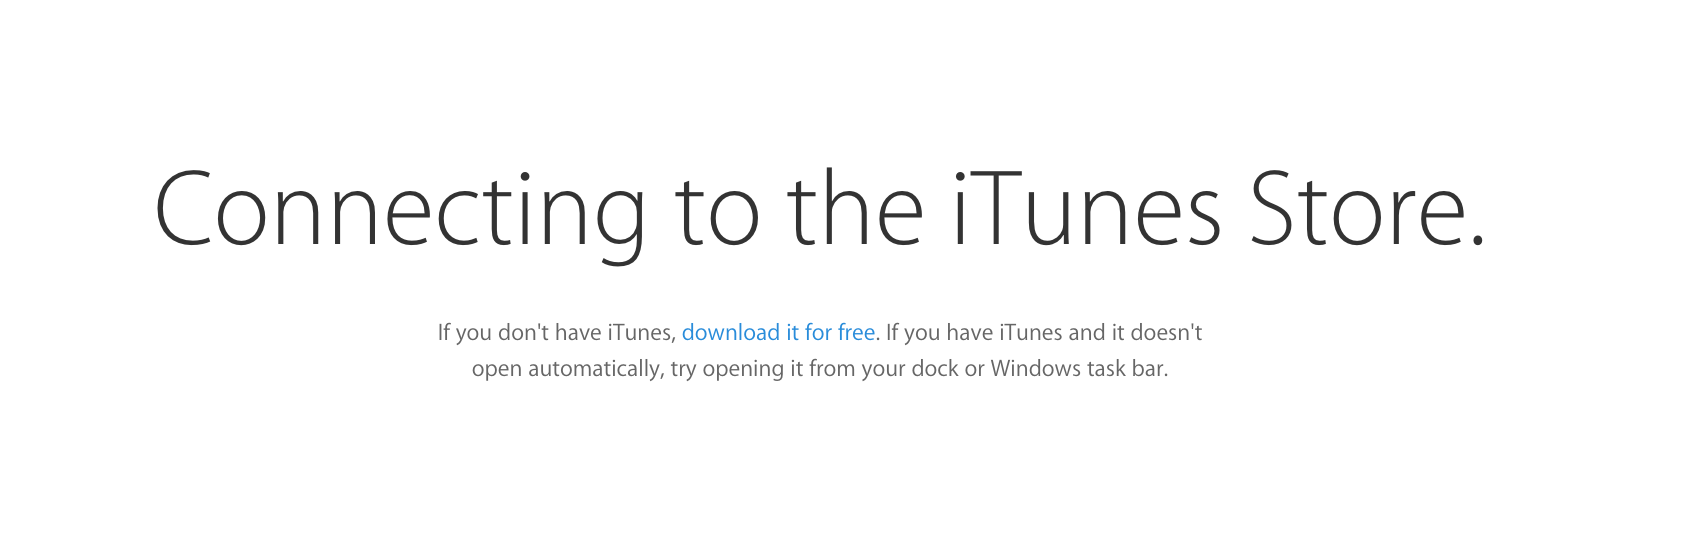 Connecting to iTunes